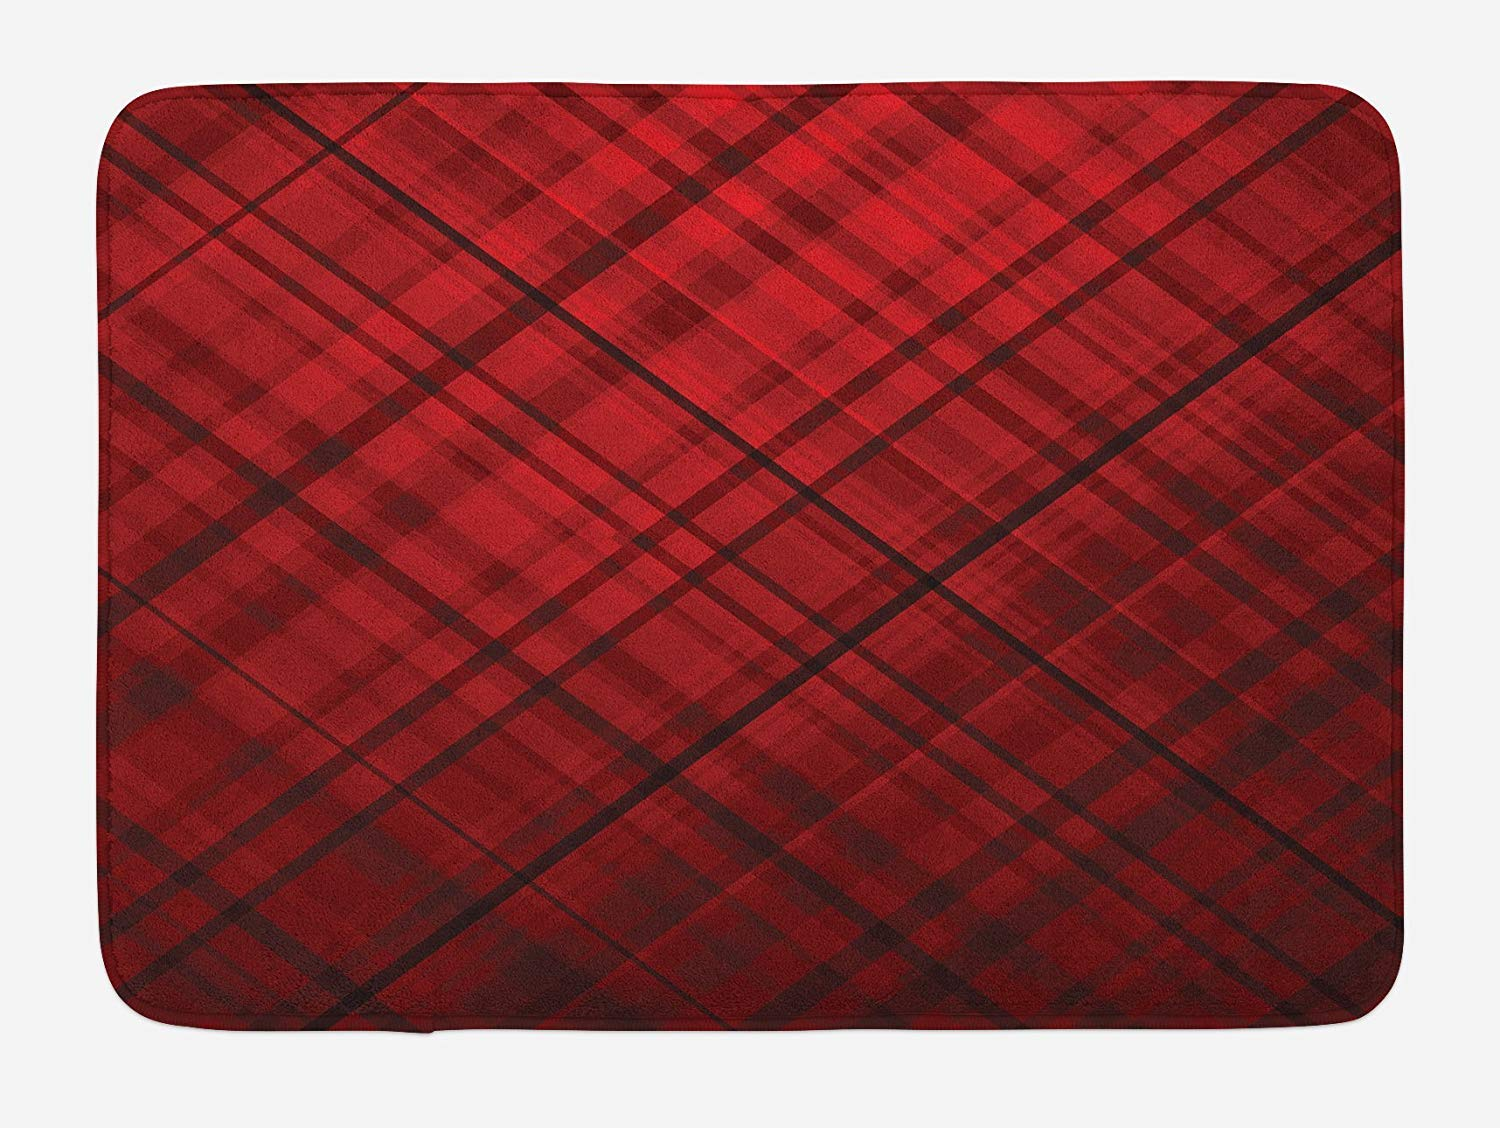 Red and Black Bath Mat, Scottish Kilt Design Pattern with